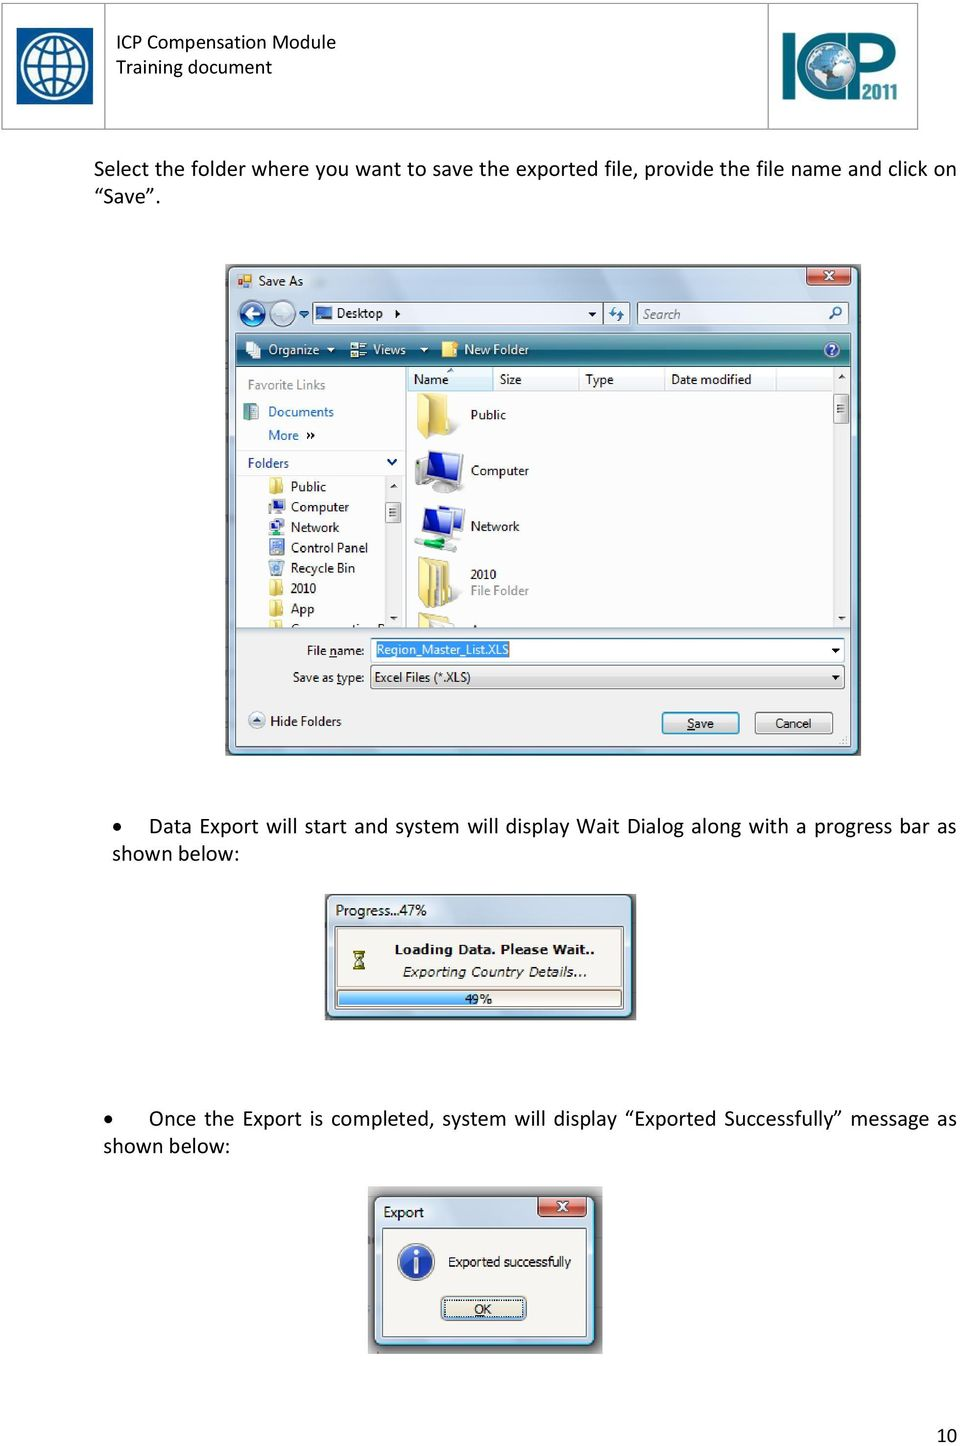 Data Export will start and system will display Wait Dialog along with a